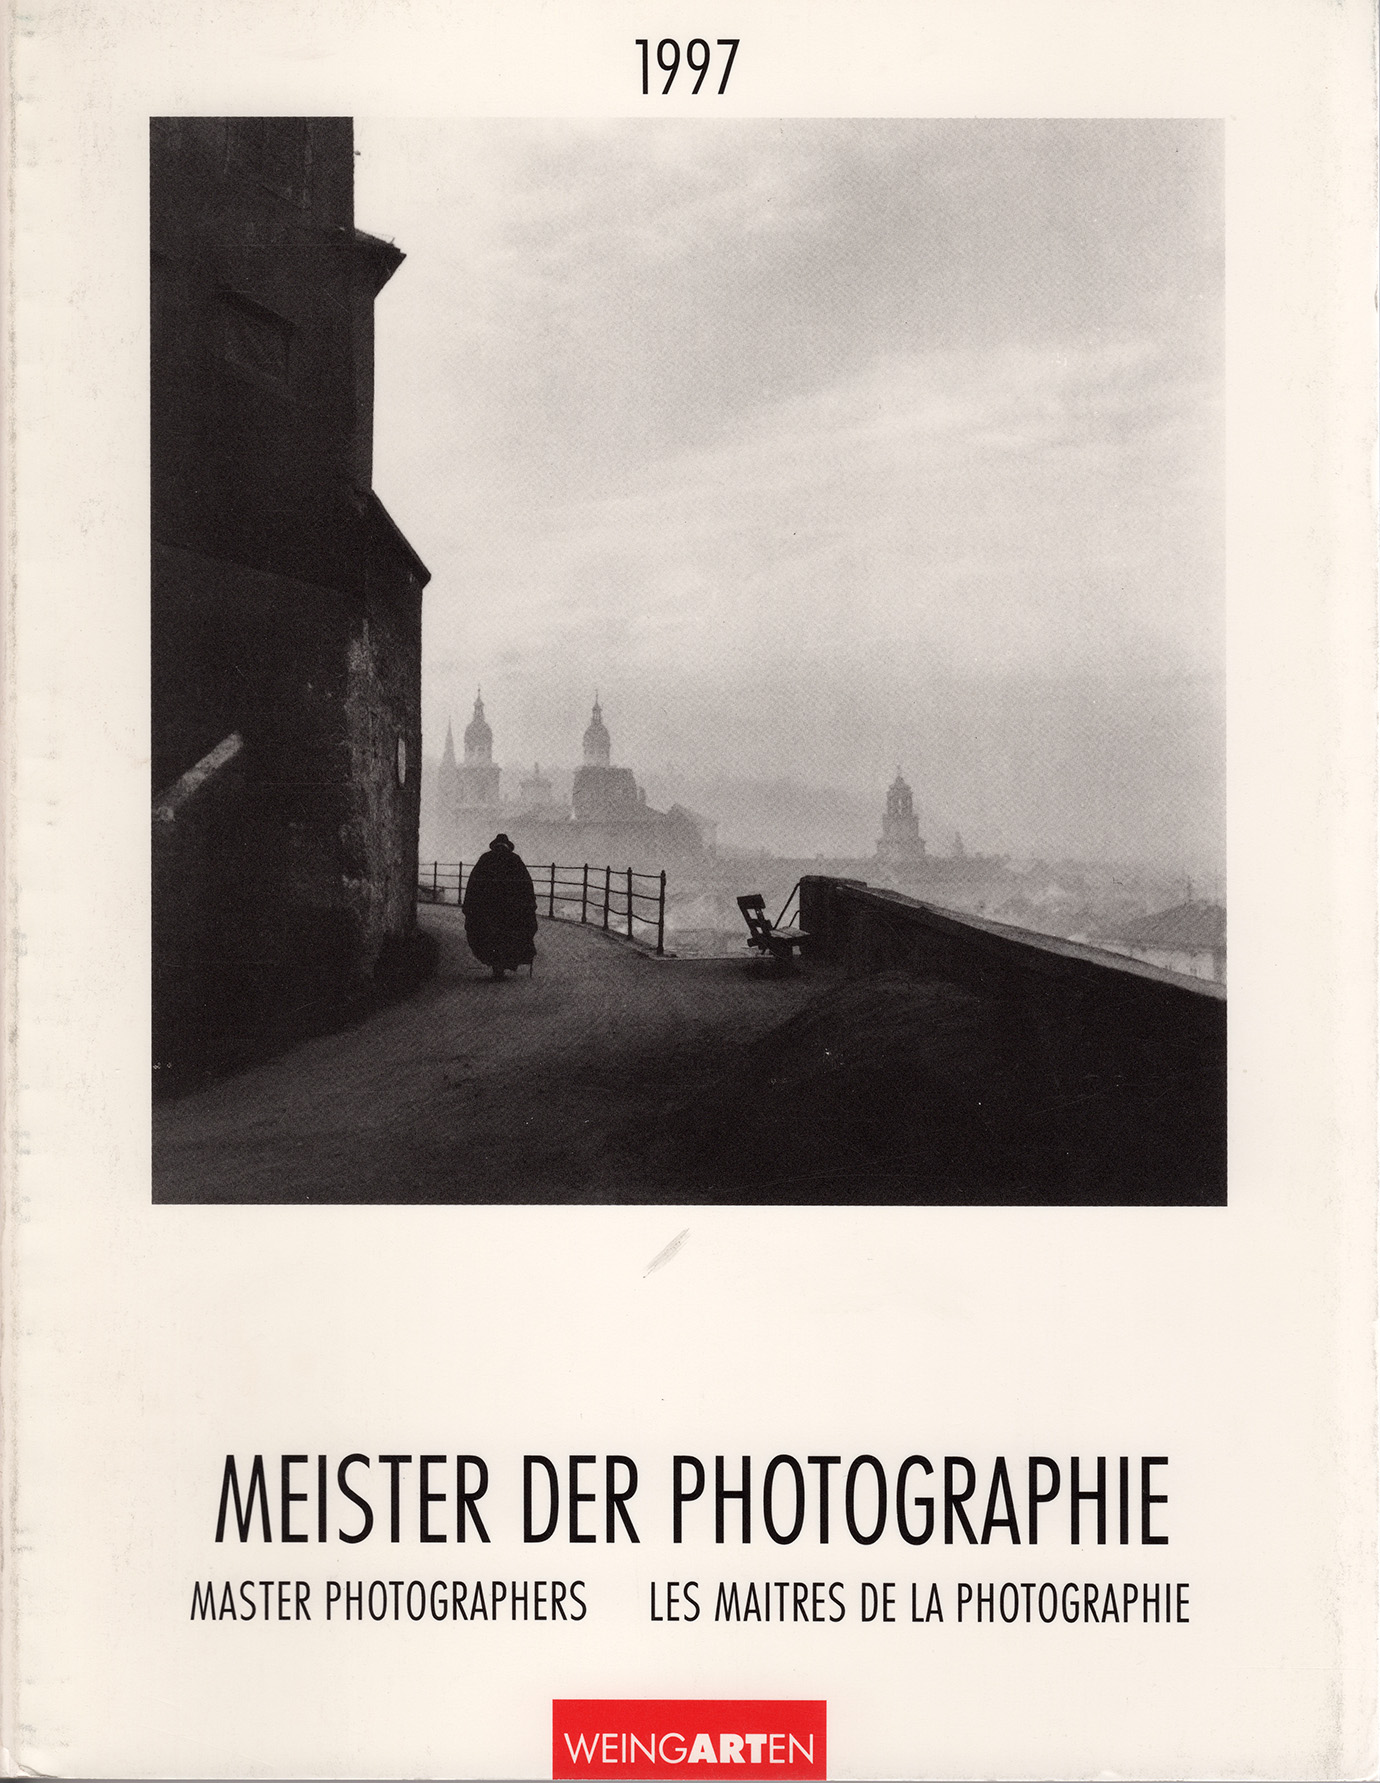 Meister photographie (USSR)